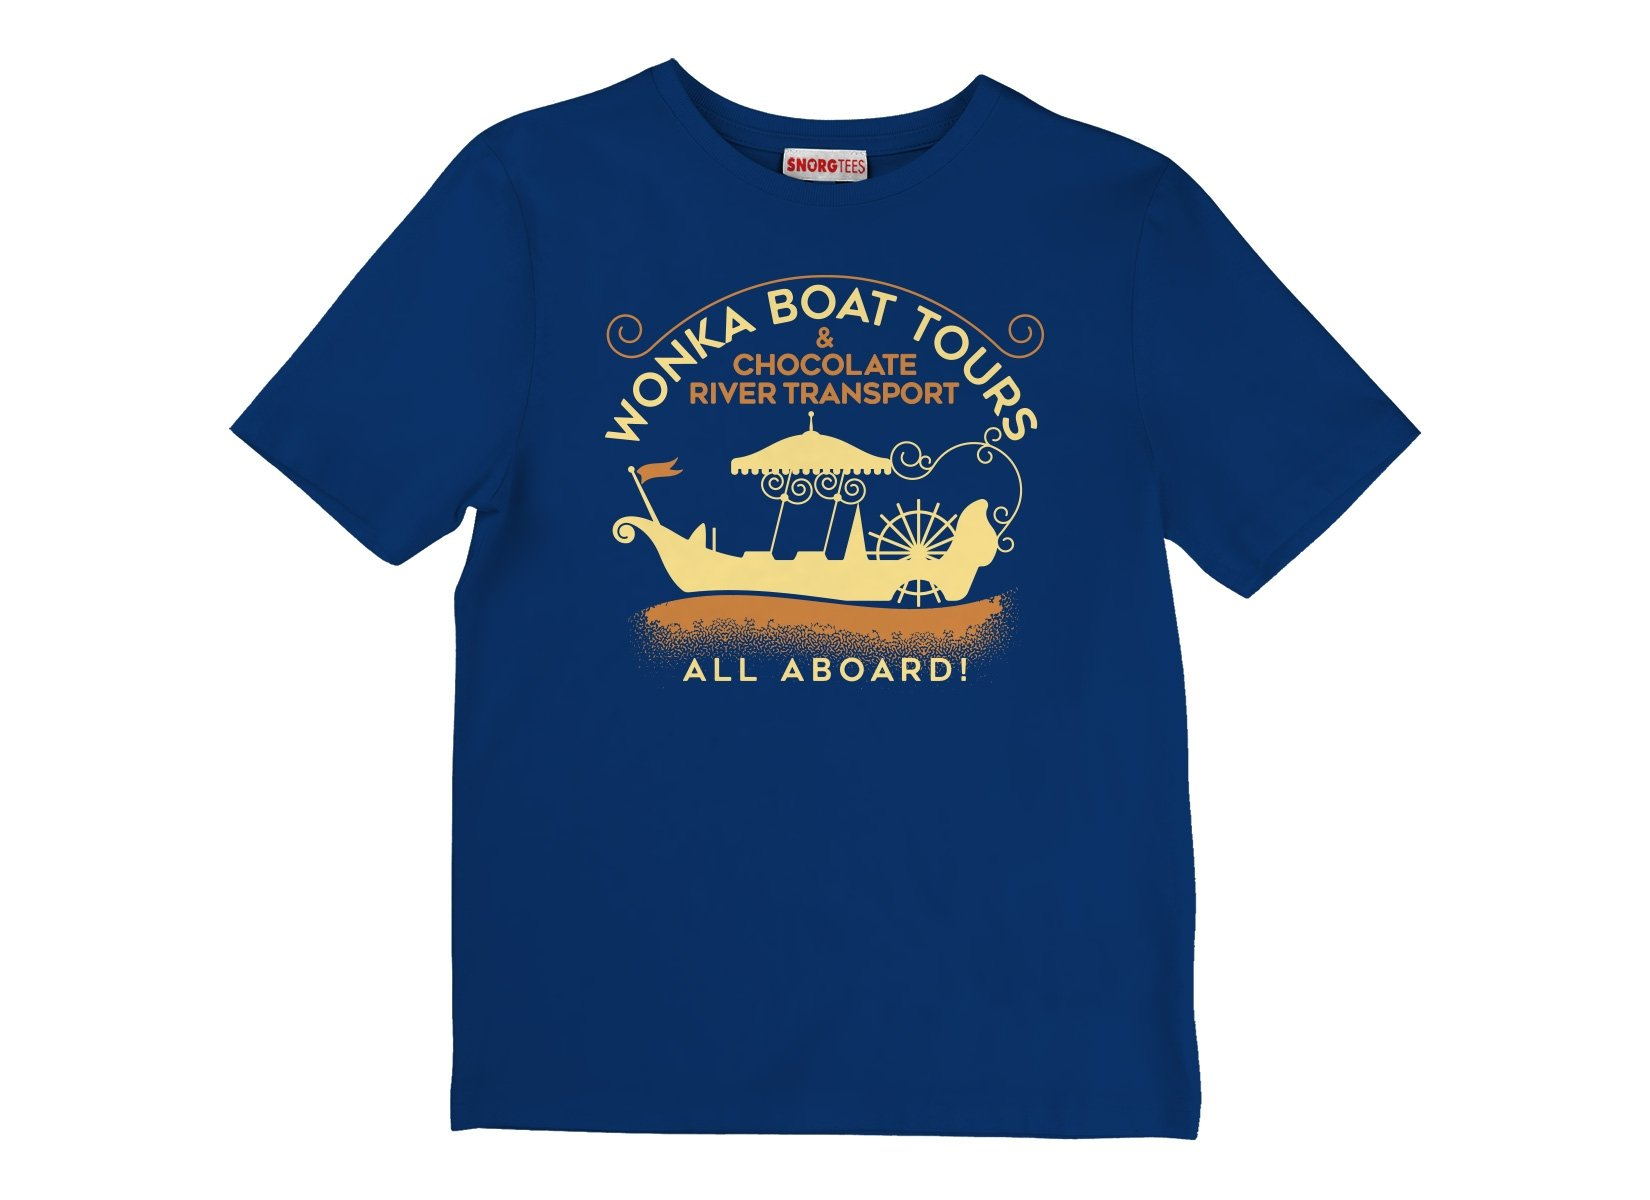 Wonka Boat Tours on Kids T-Shirt